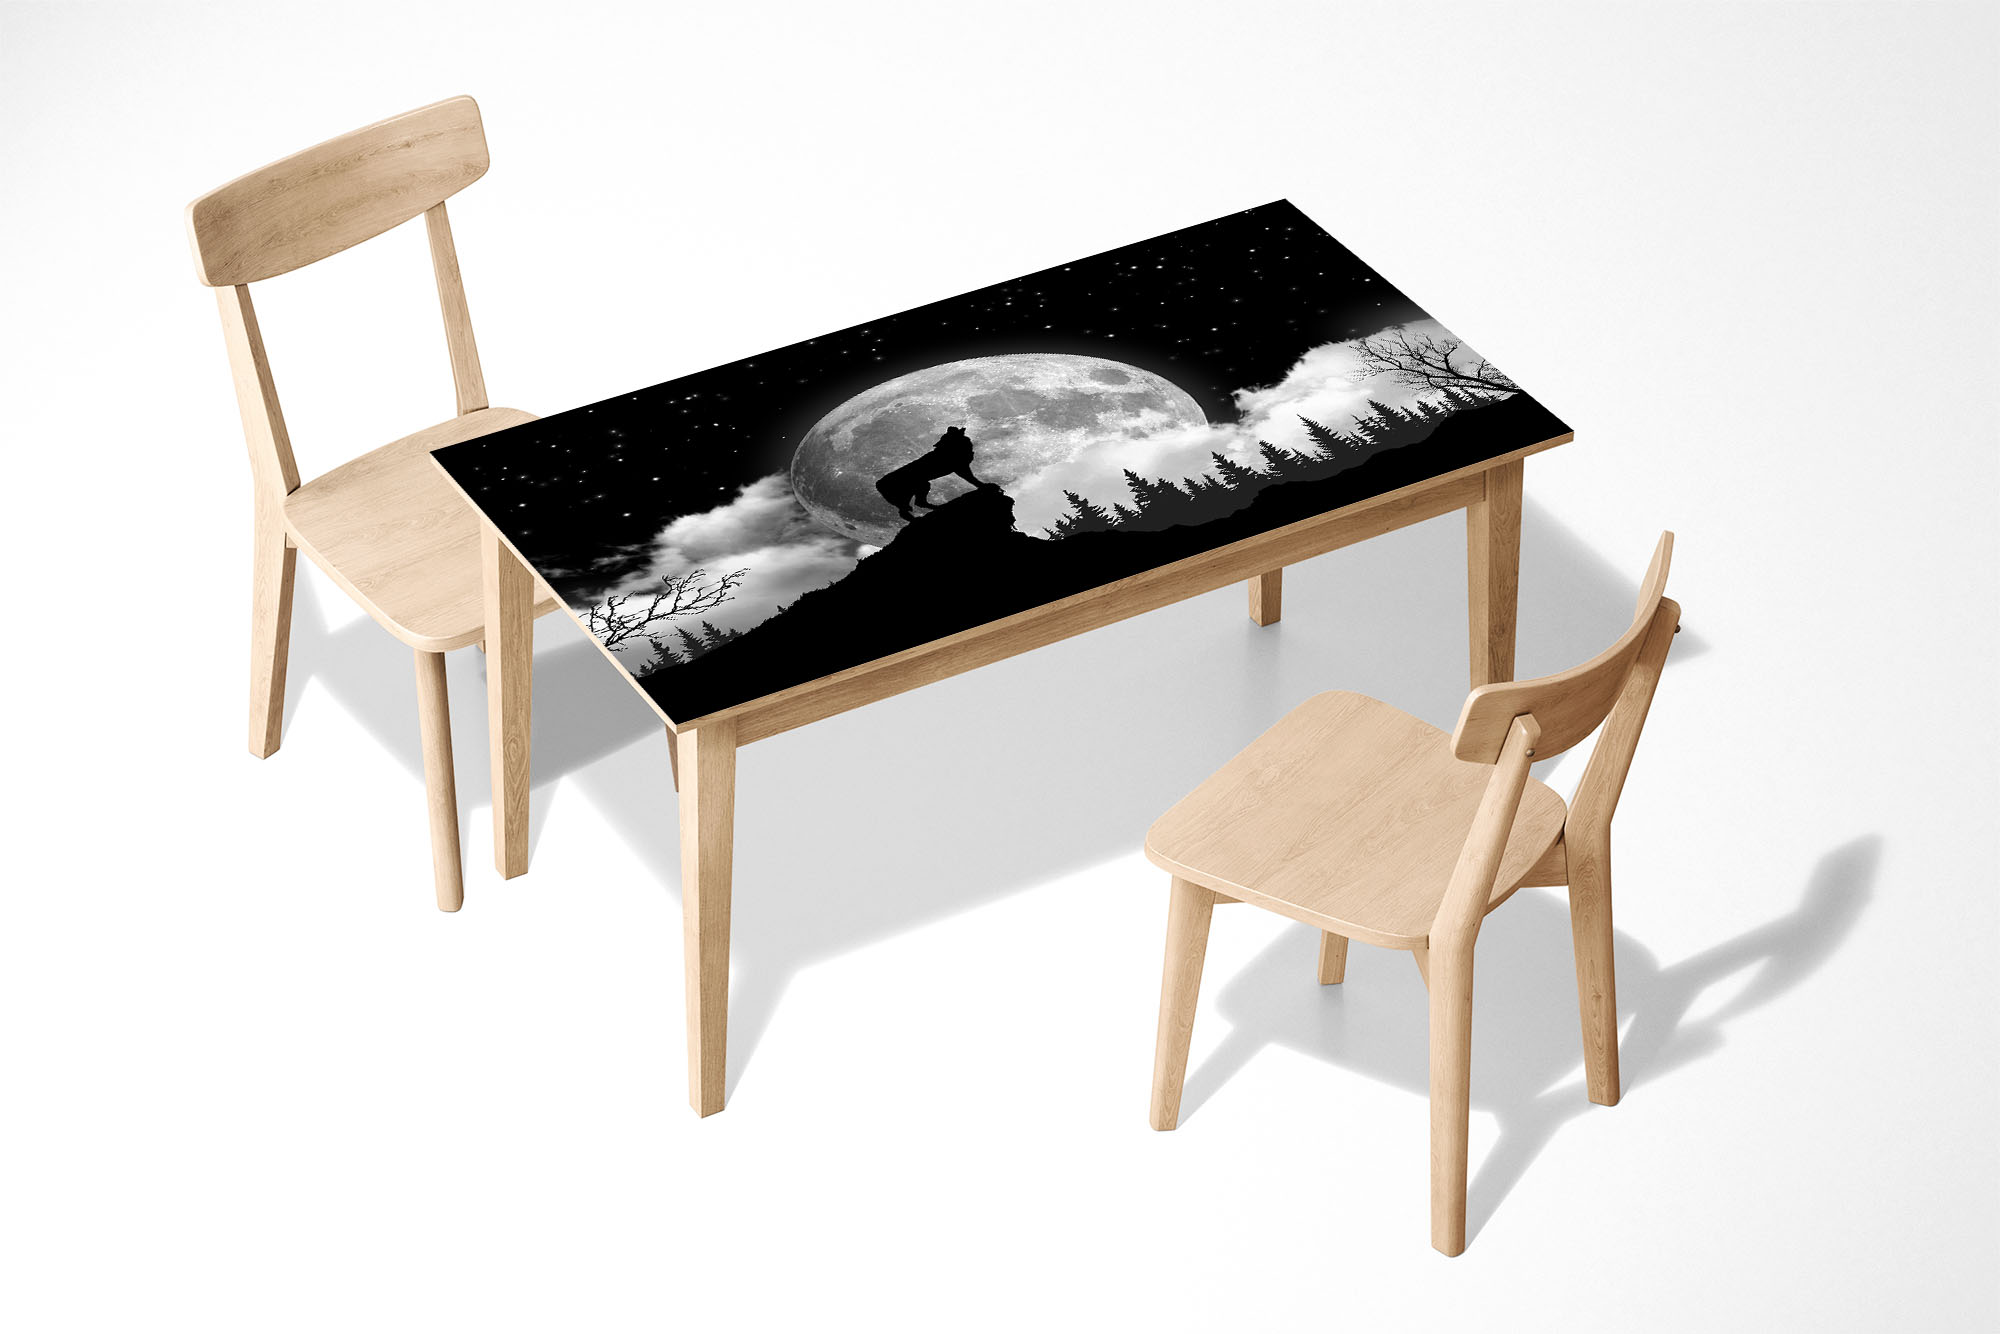 Howling Wolf Laminated Self Adhesive Vinyl Table Desk Art Décor Cover